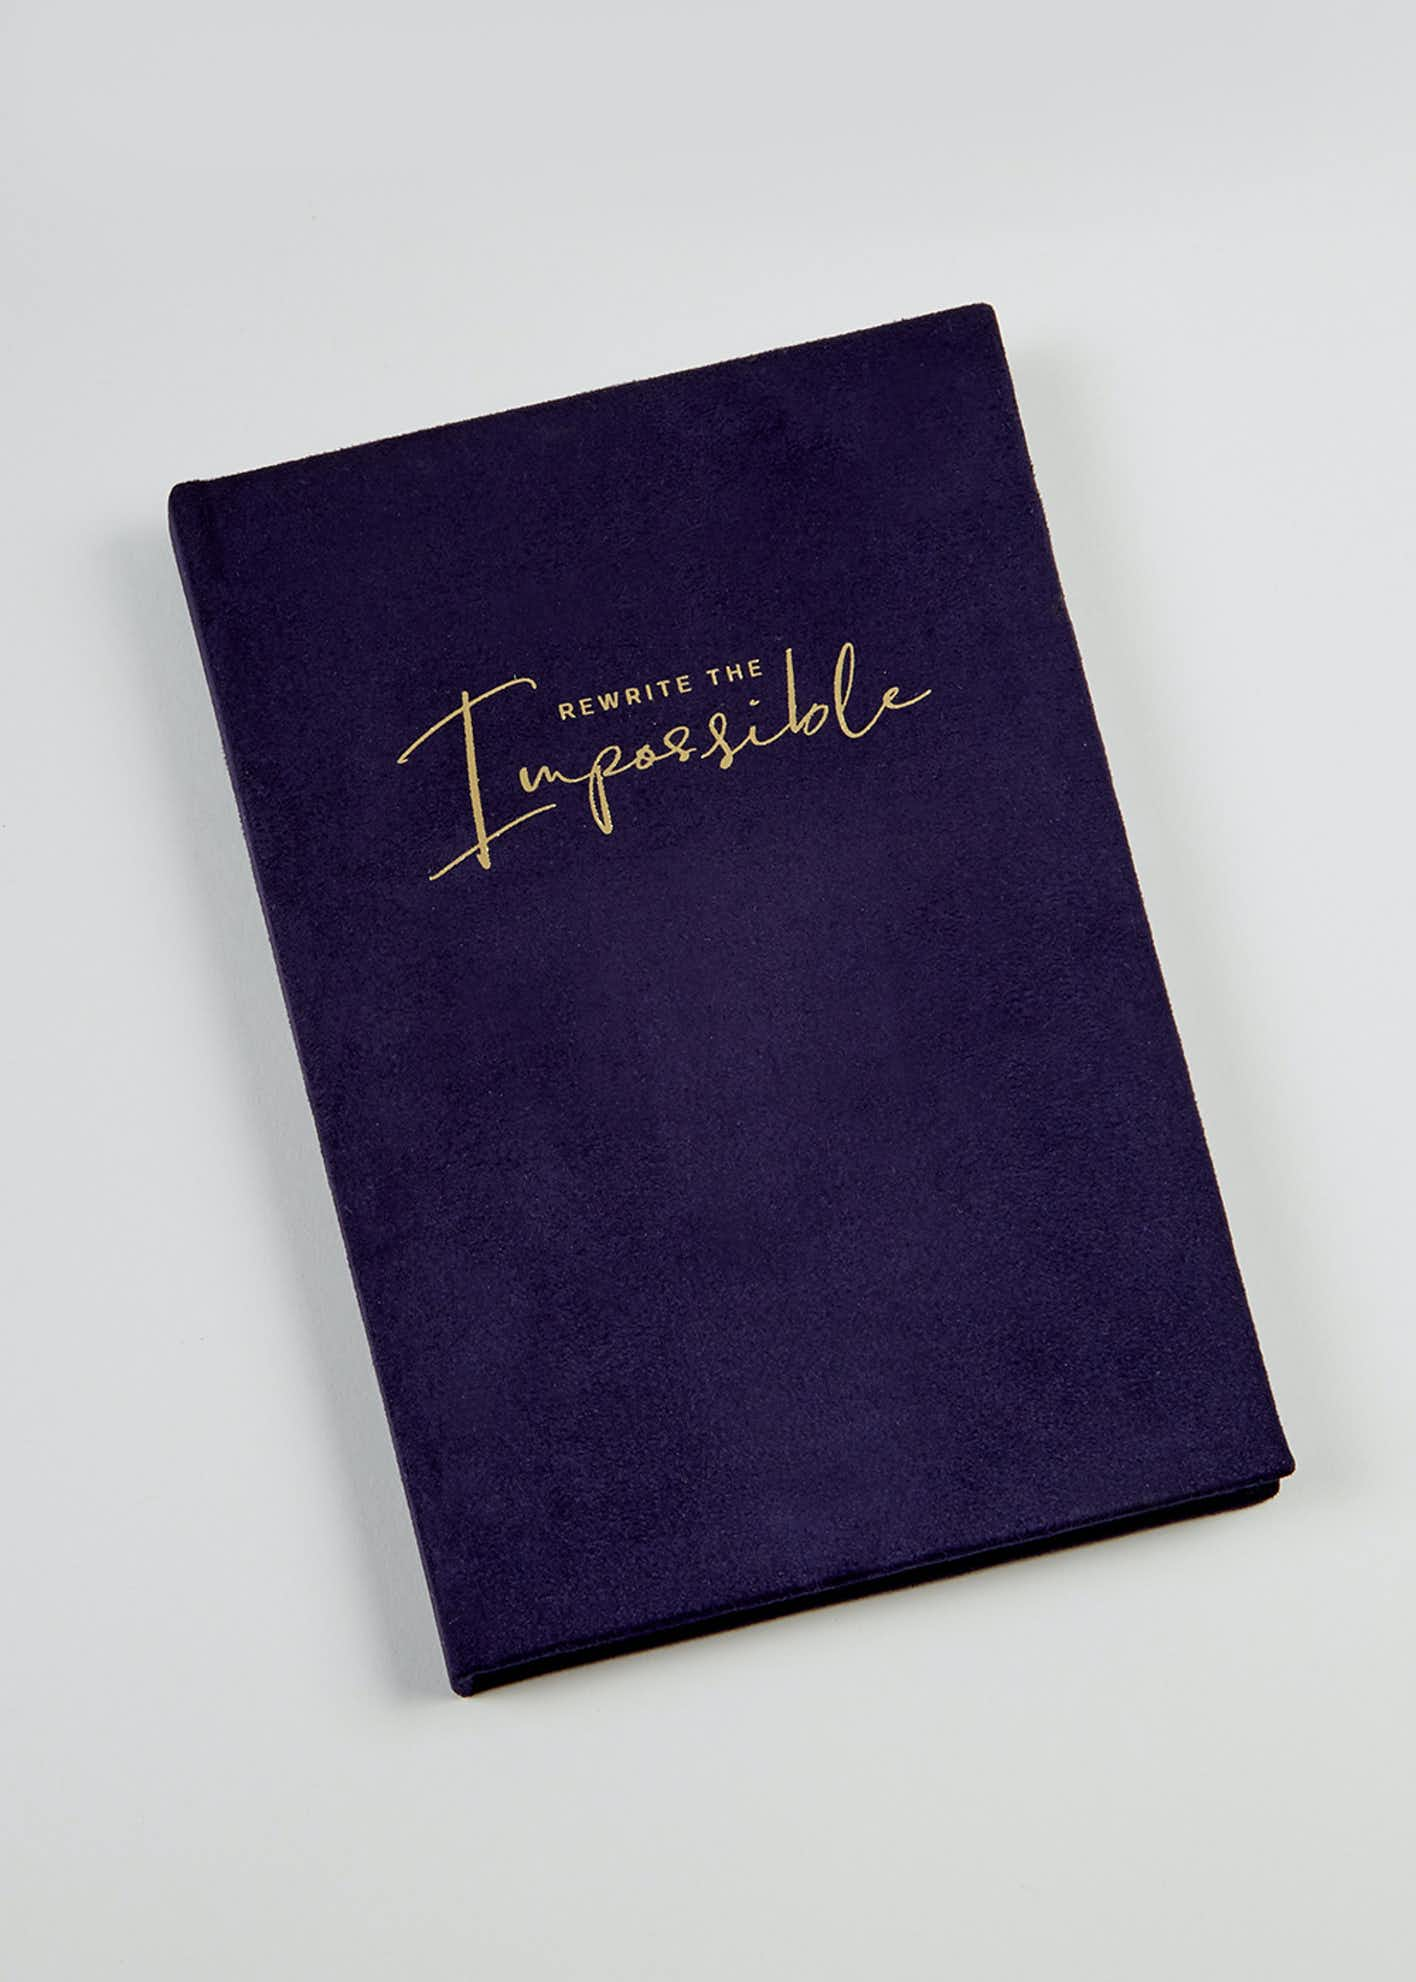 Rewrite the Impossible A5 Notebook (22cm x 15cm x 2cm)